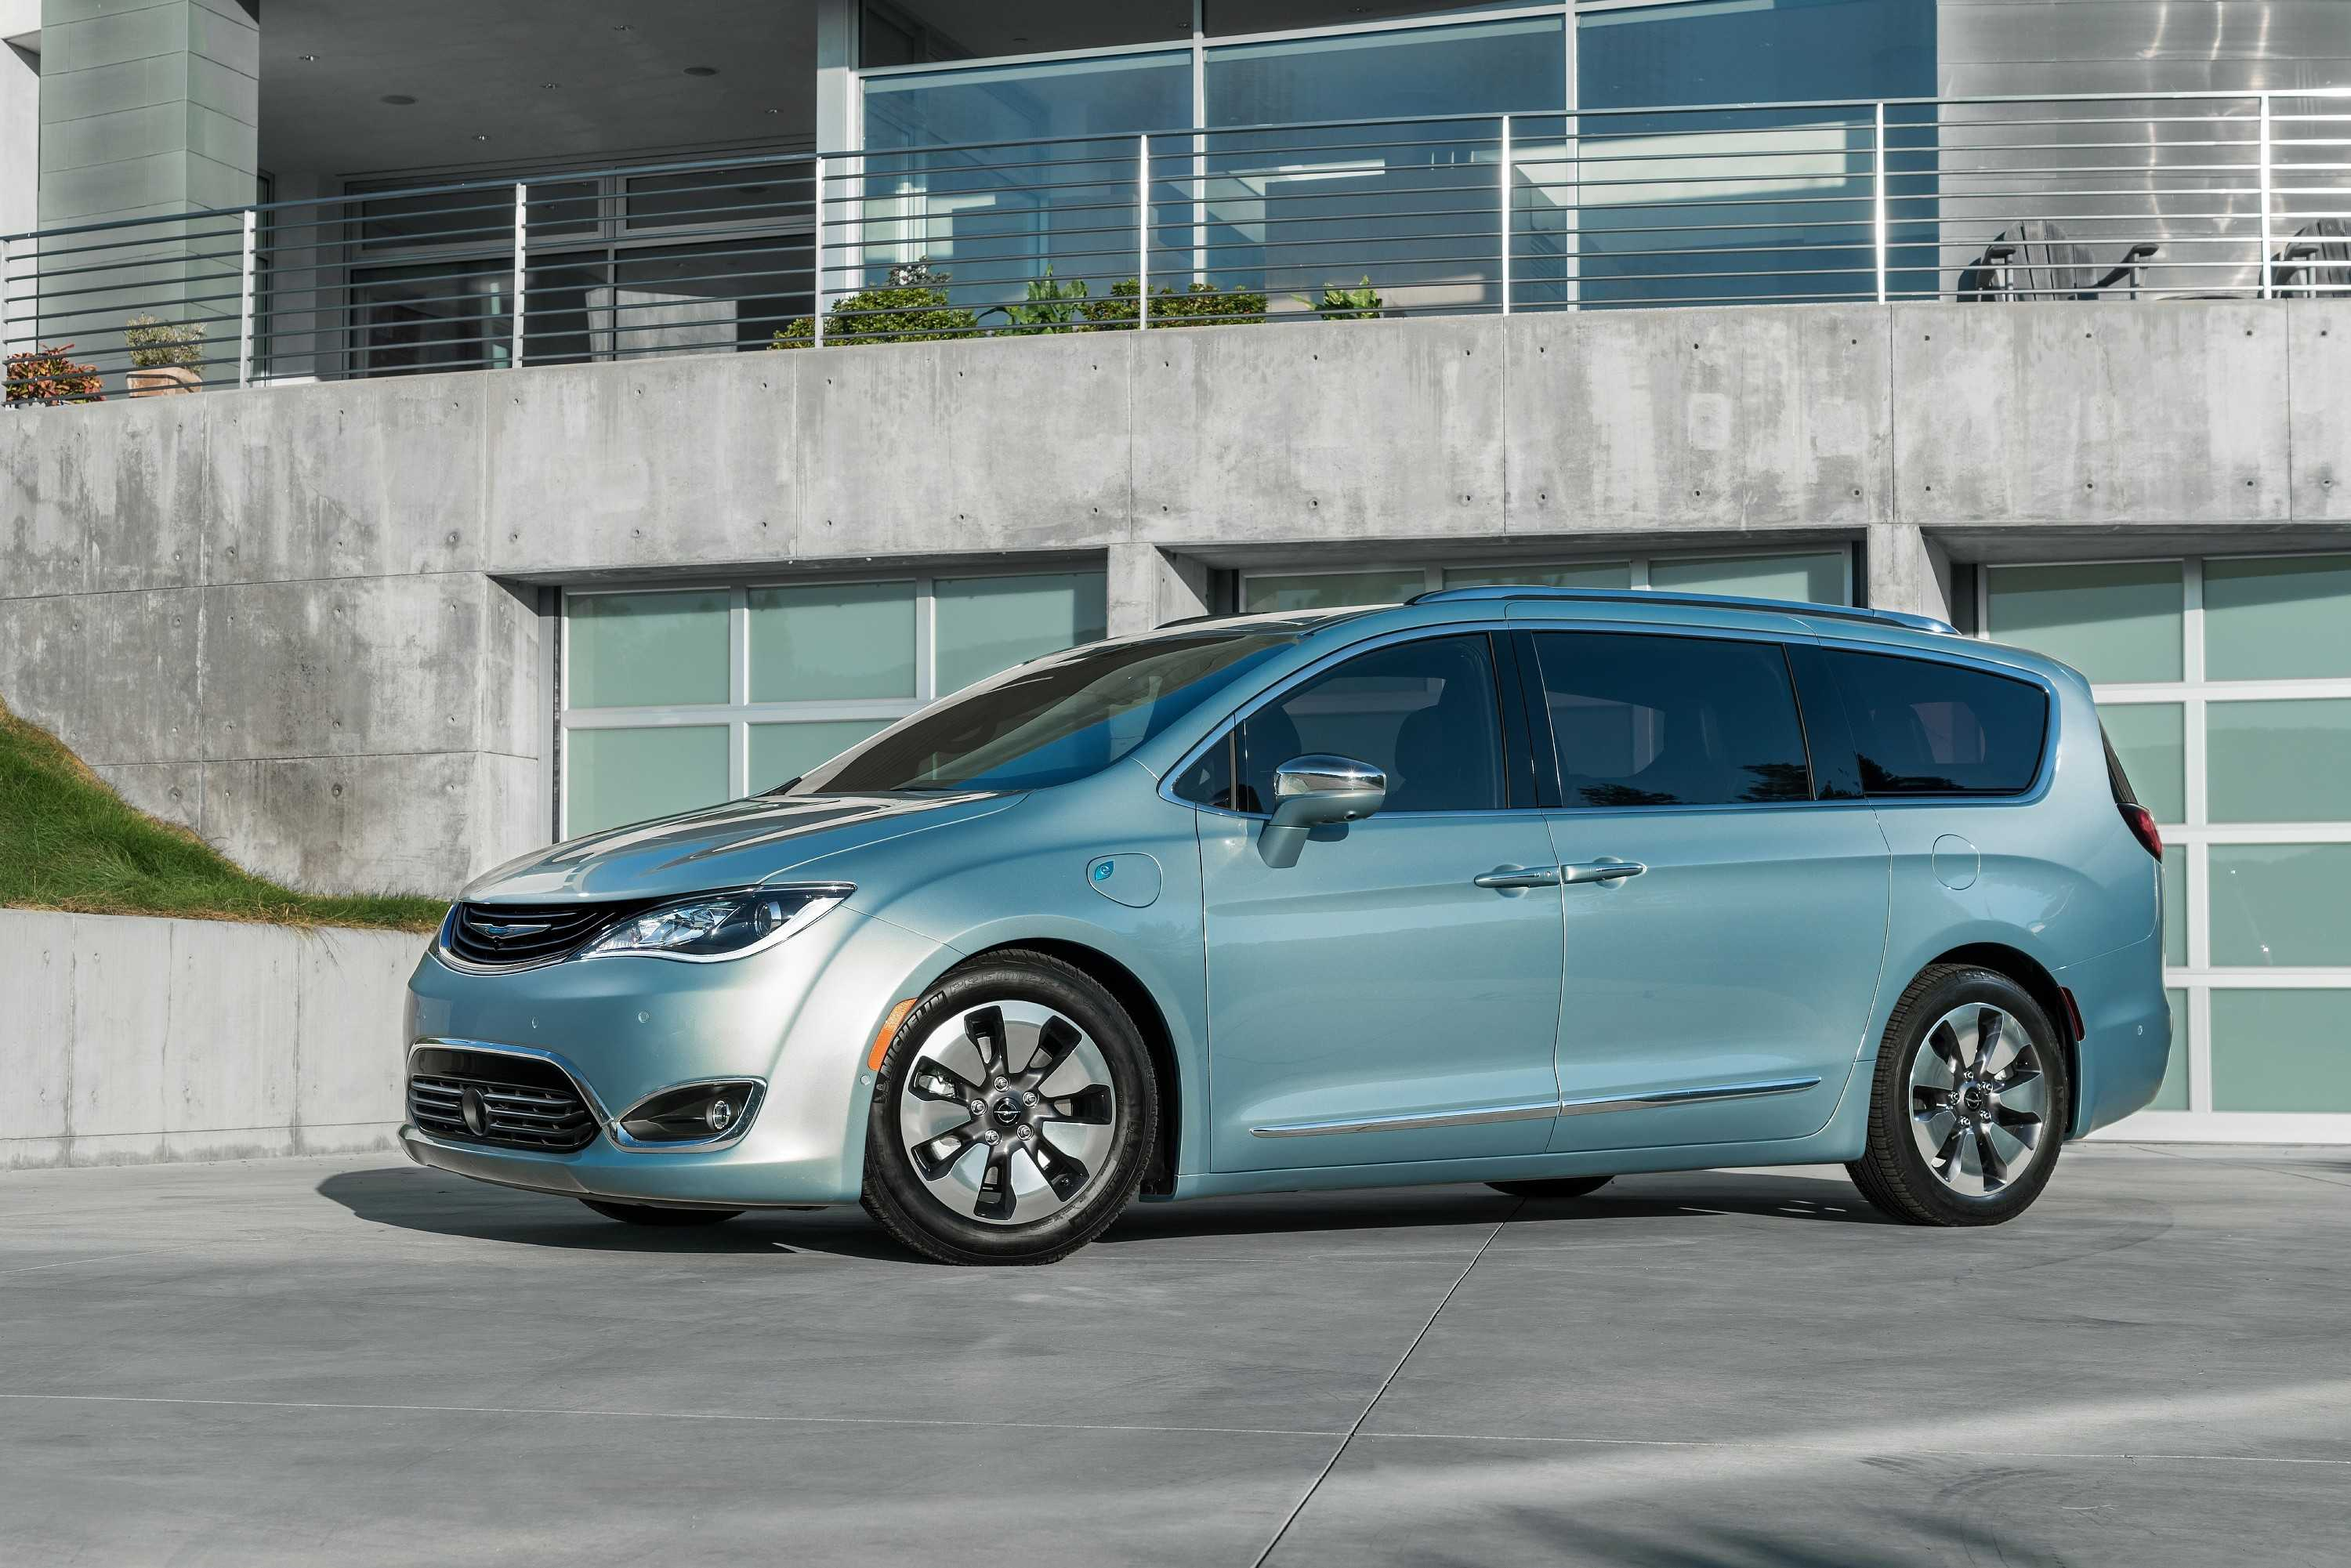 Google and Fiat are working on self-driving minivans.